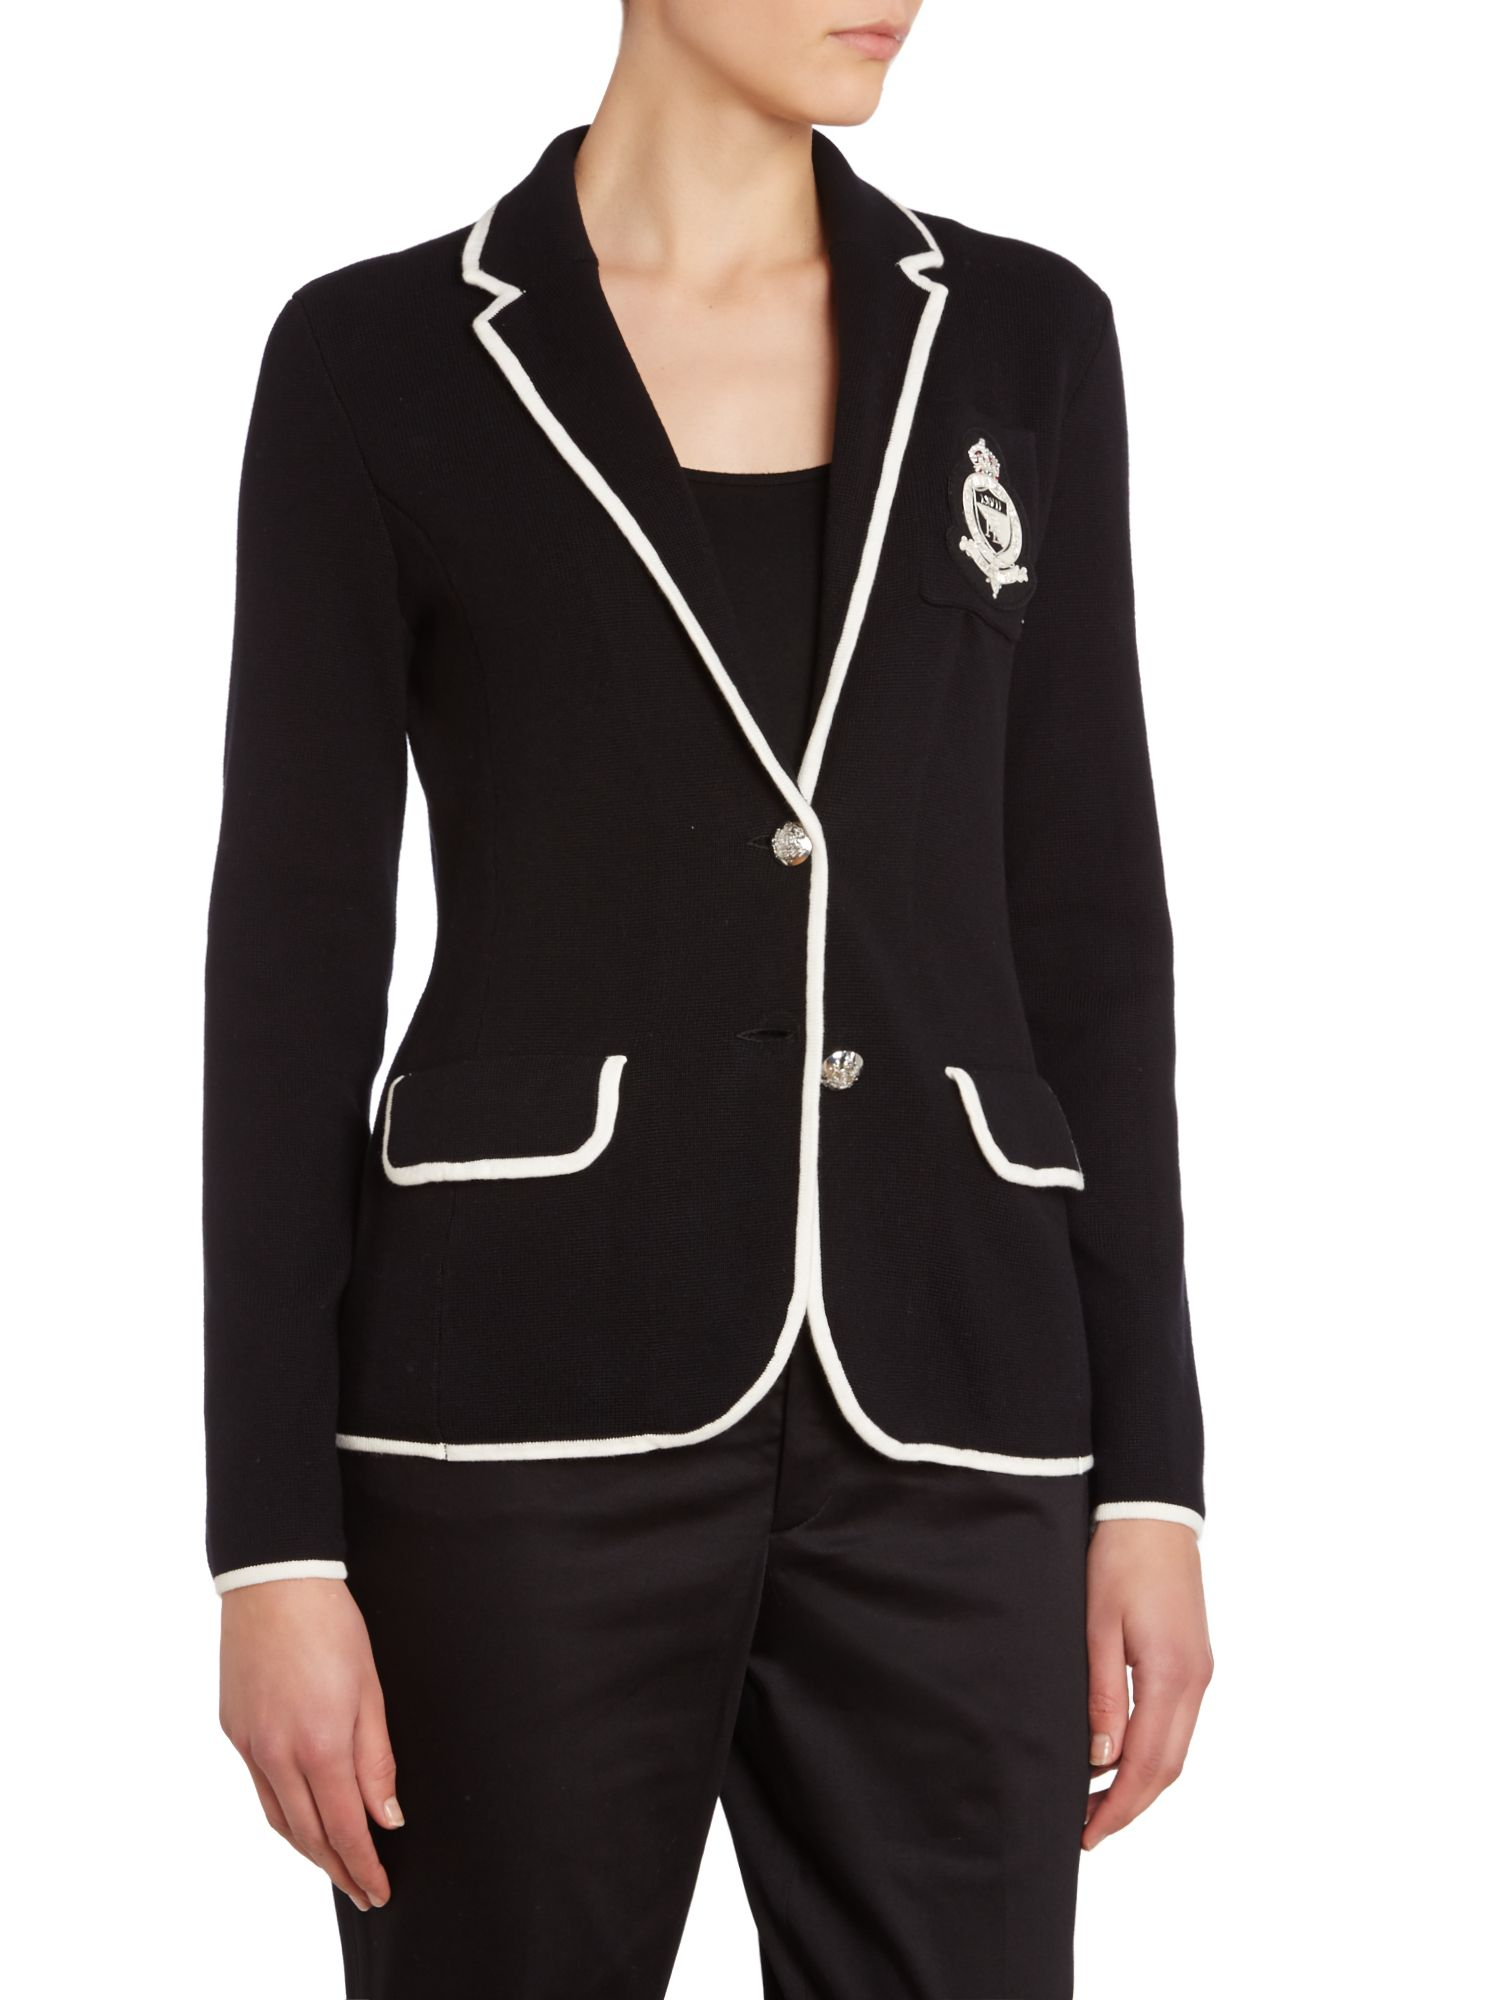 Knitted blazer with contrast trim